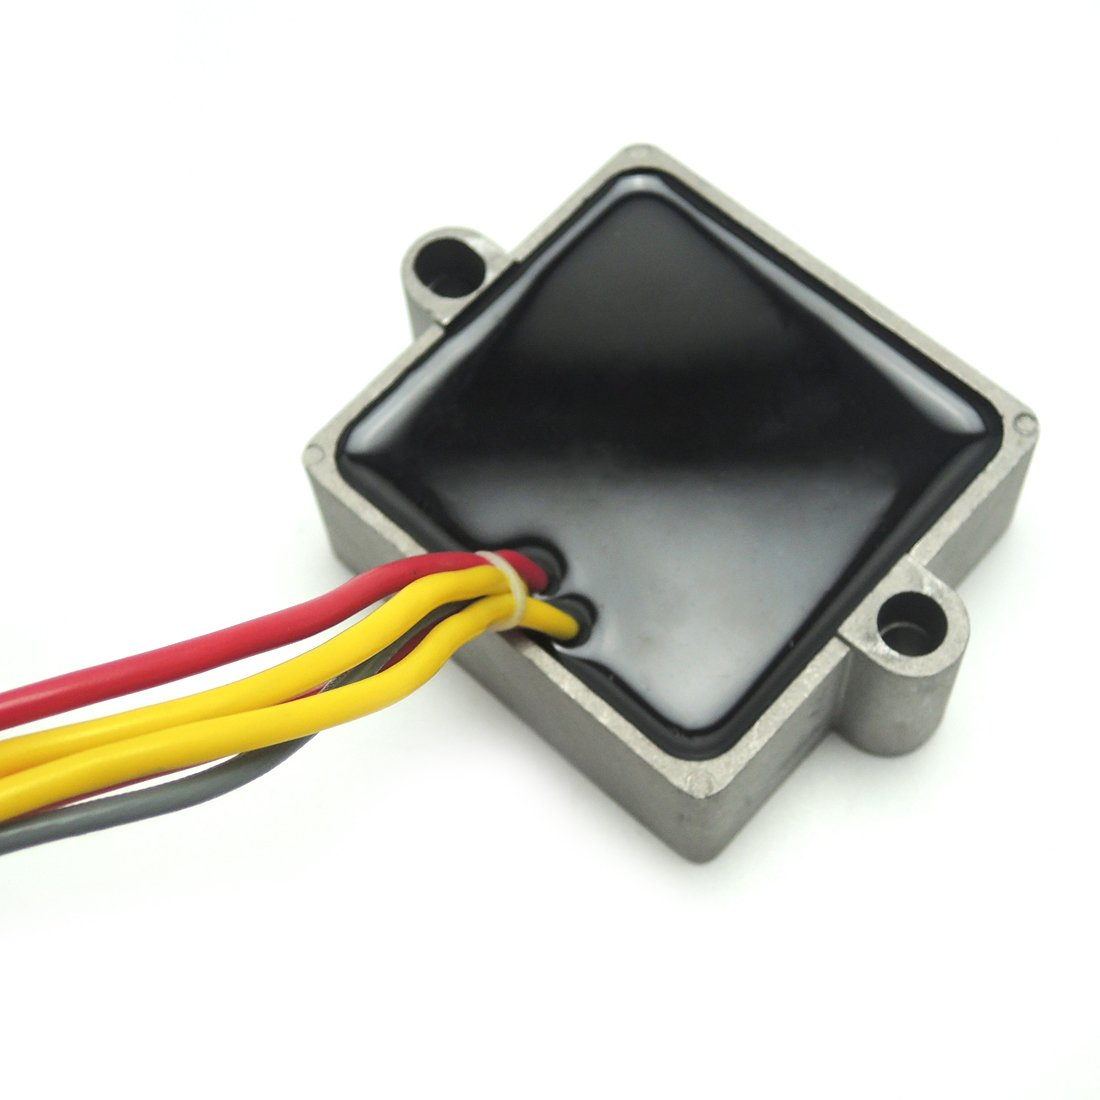 815279 Rectifier Regulator Fits Mercury Mariner Outboard 1988 150 Xr2 Wiring Diagrams 5 Wires 815279t Automotive